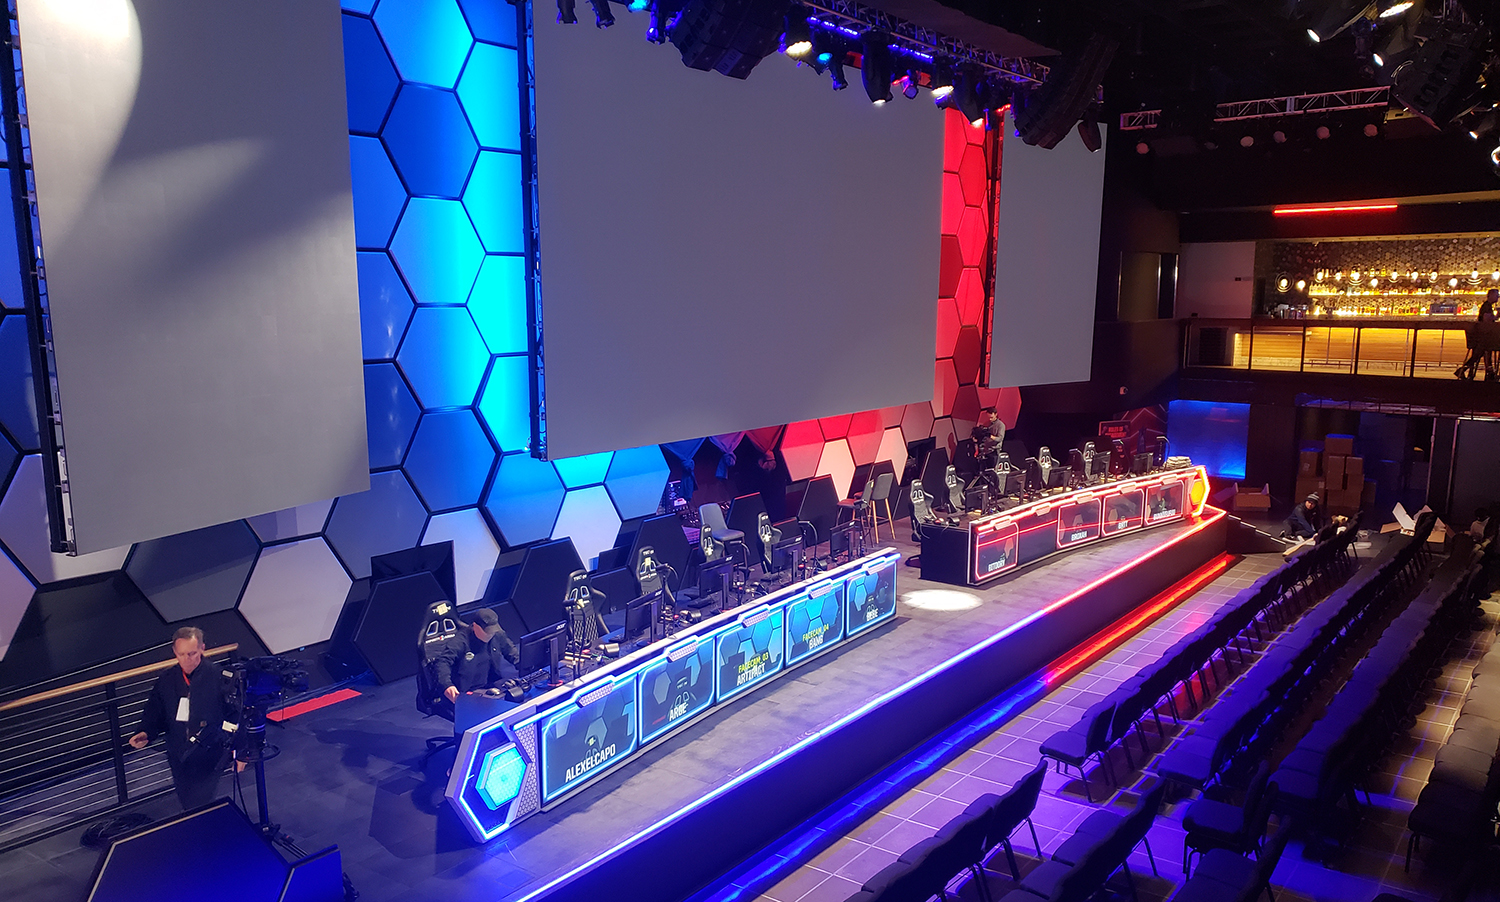 In an effort to create this party-like atmosphere, Riot opted to shift the LoL  All-Star event to HyperX Esports Arena Las Vegas.